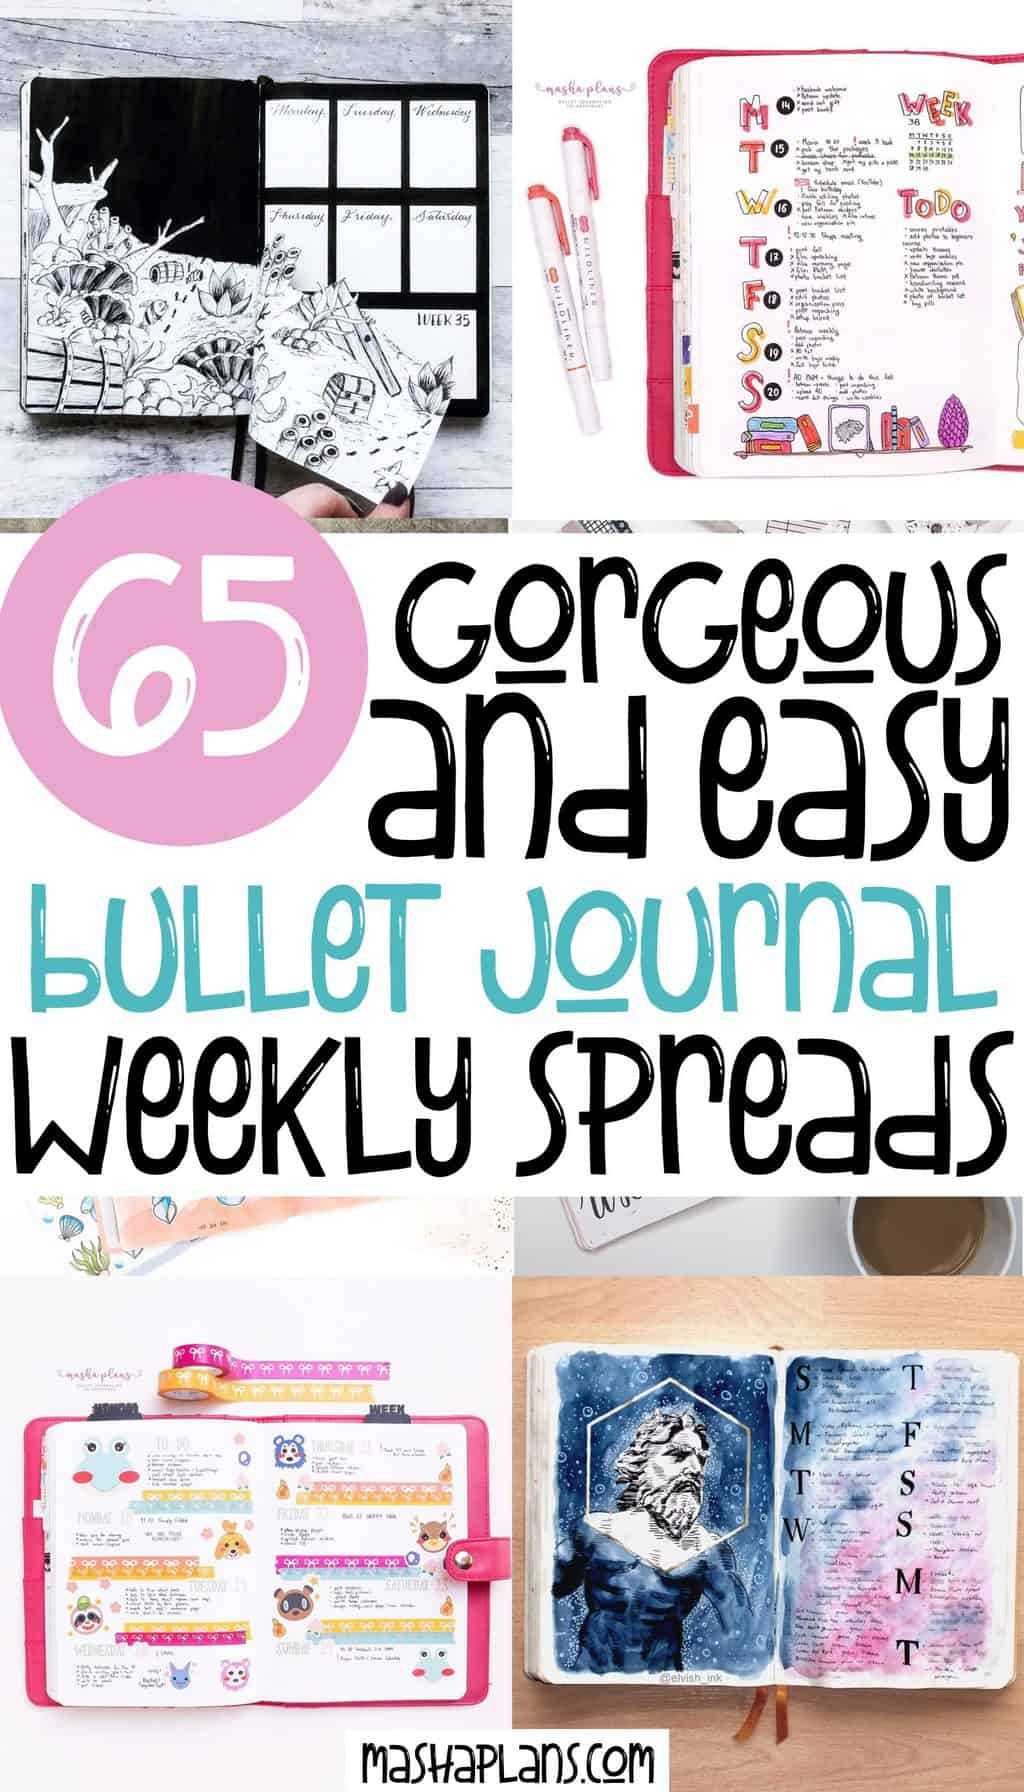 65 Gorgeous and Easy Bullet Journal Weekly Spreads To Try Right Now | Masha Plans